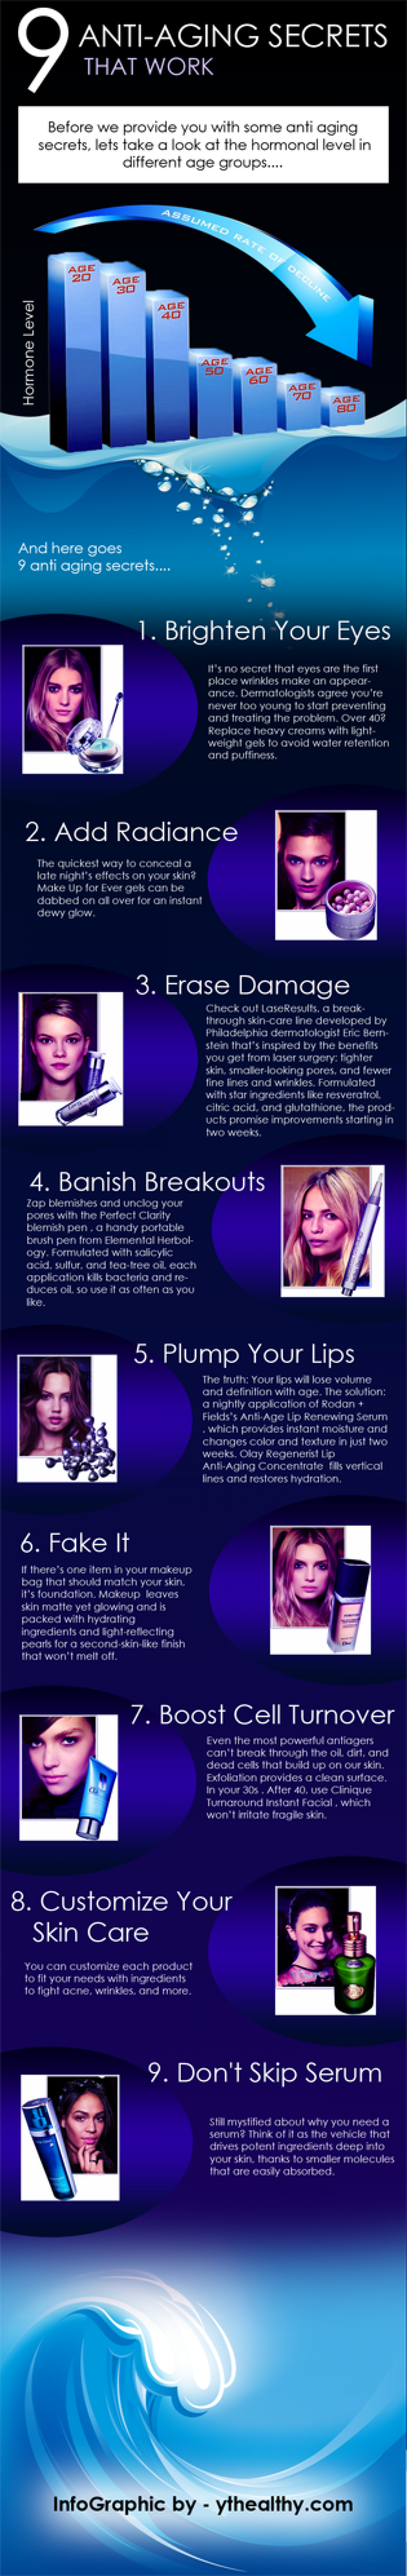 9 anti aging secrets Infographic